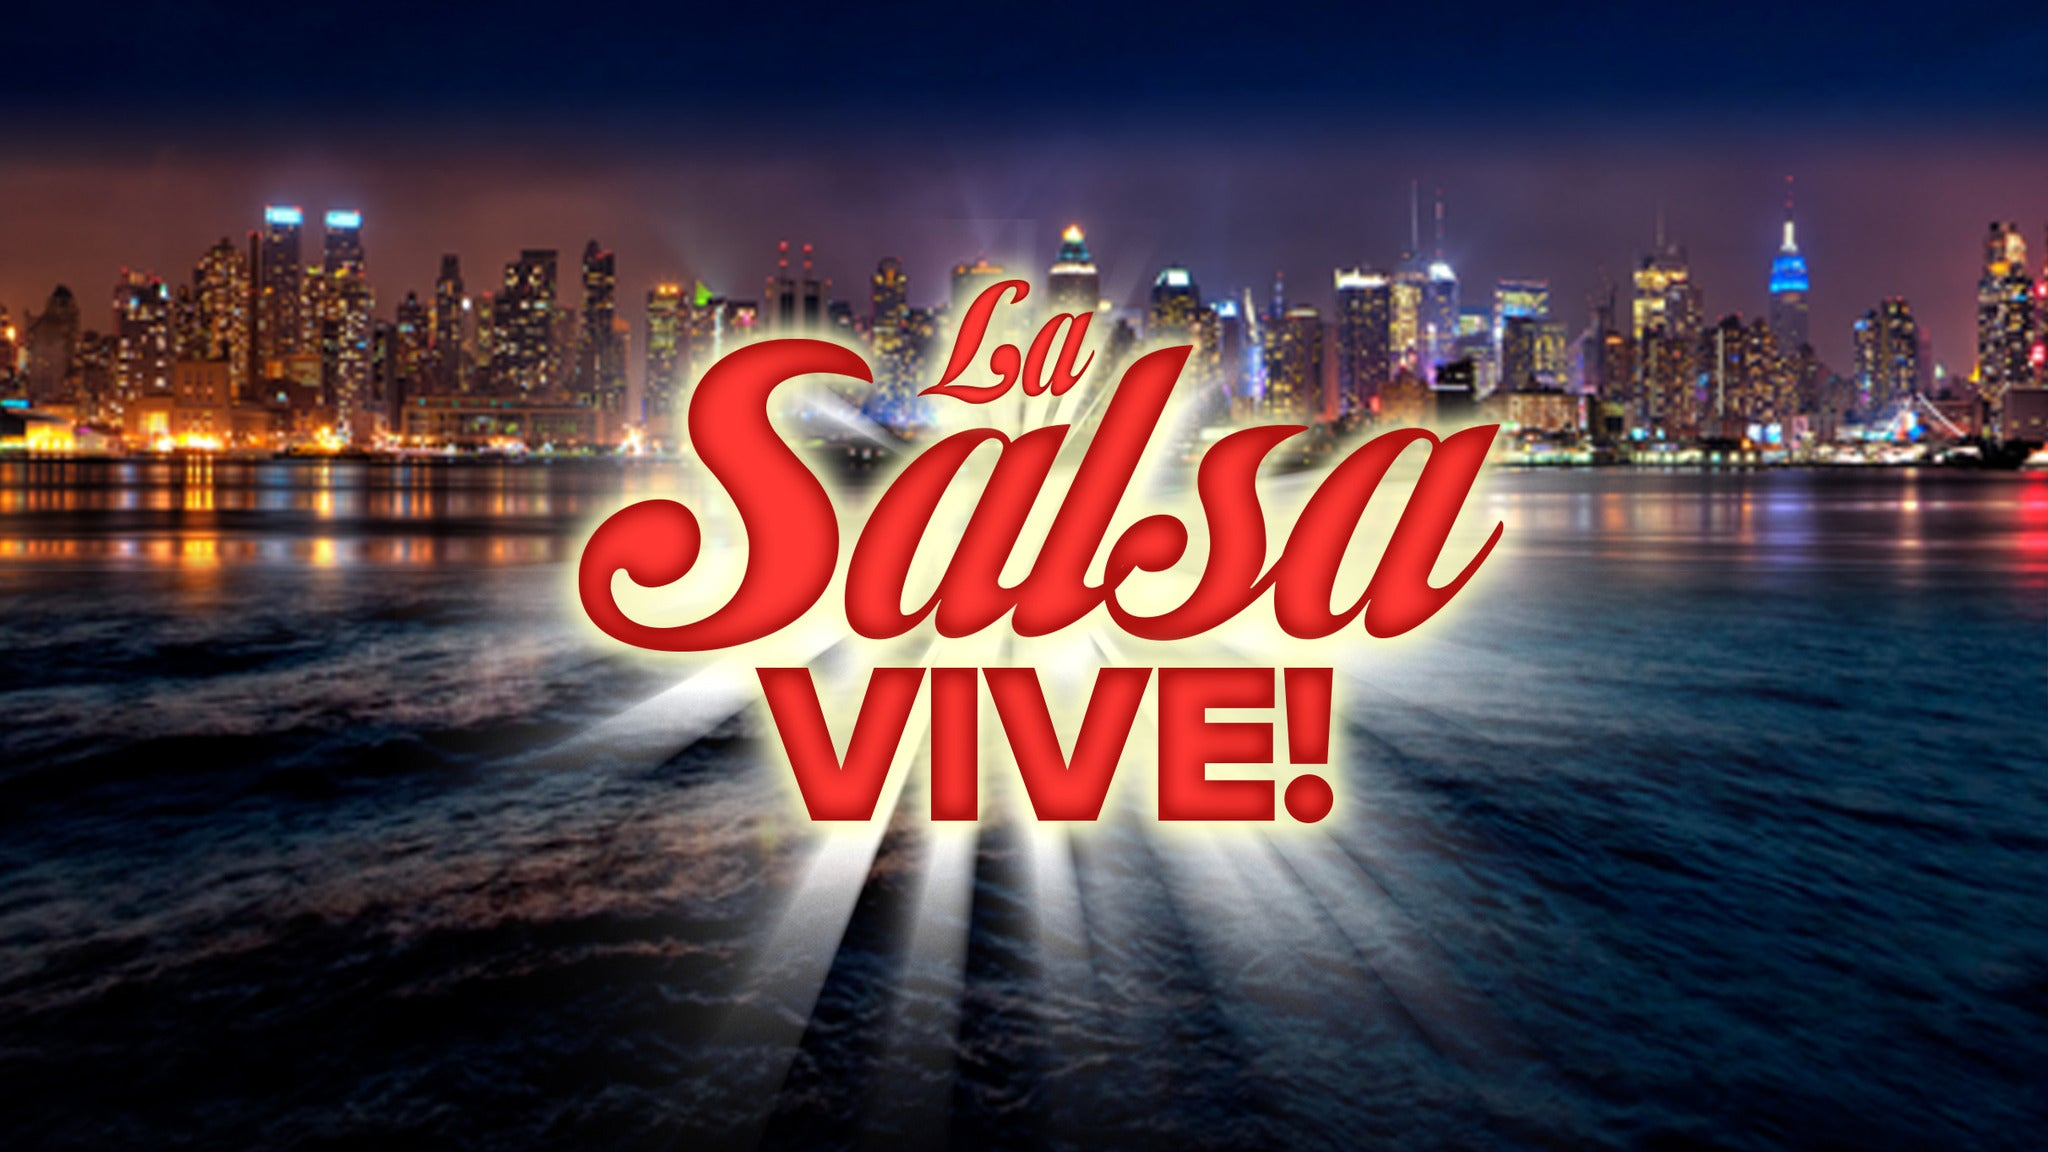 La Salsa Vive at Amway Center